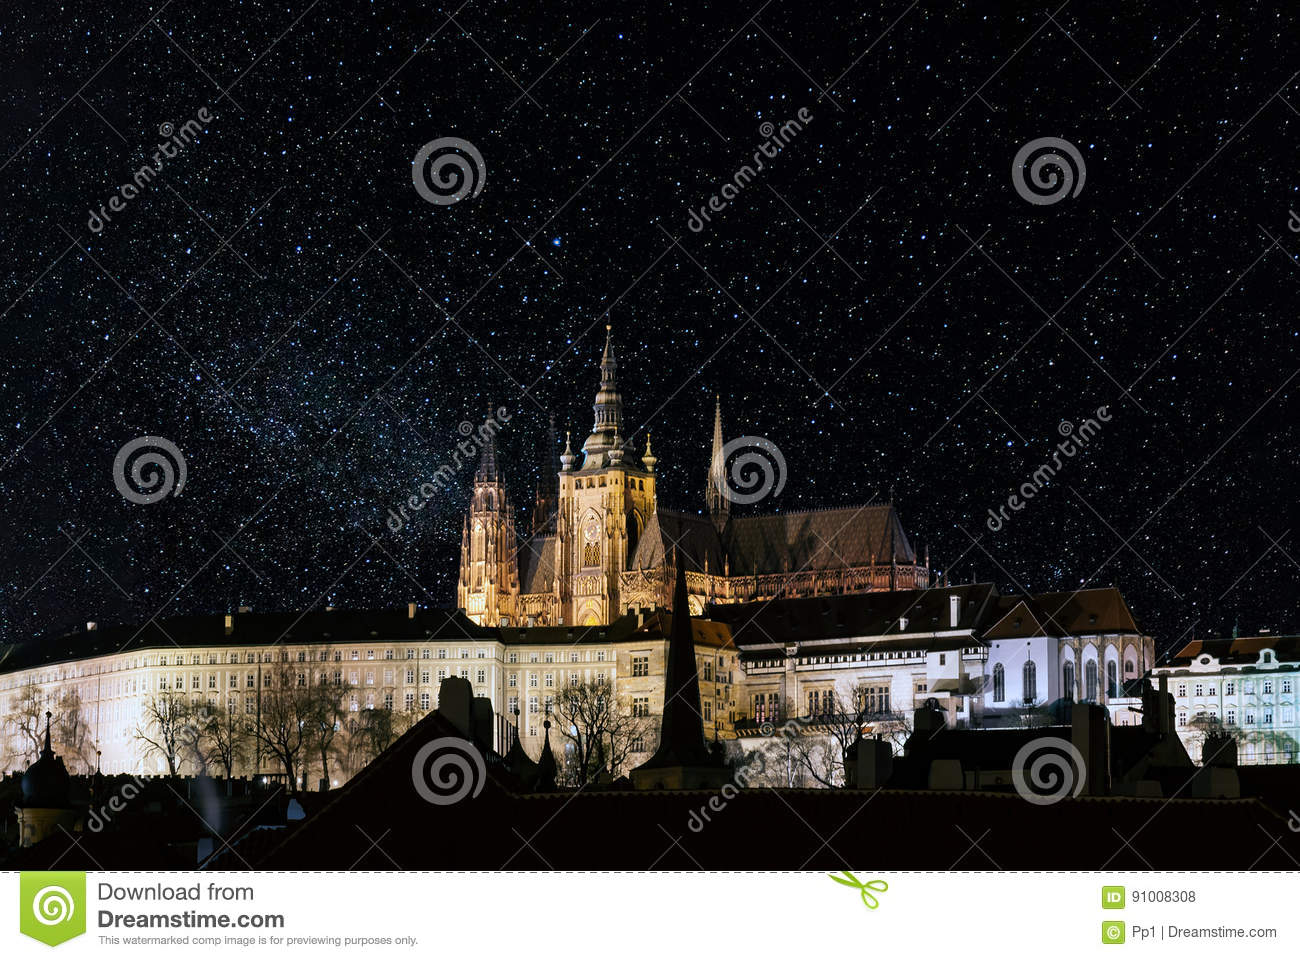 Prague castle at night, with stars filled sky